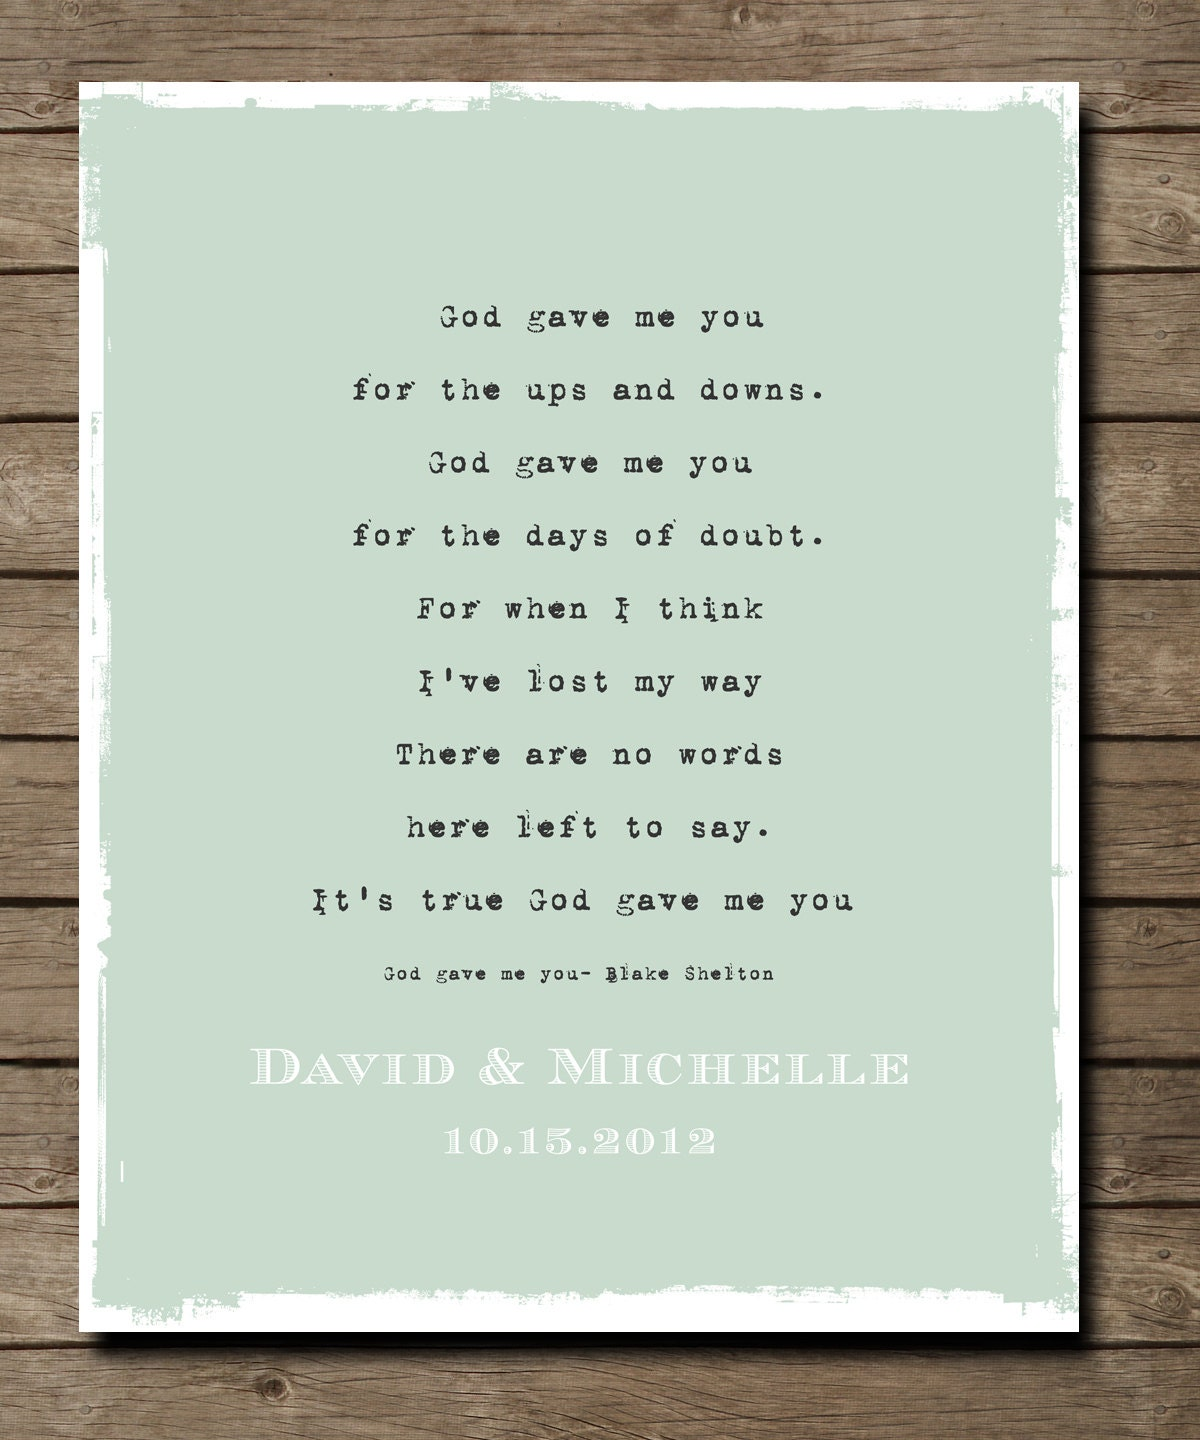 Wedding Present Box Elder Lyrics : Wedding Paper Anniversary Gift Print,God gave me you verse lyrics ...